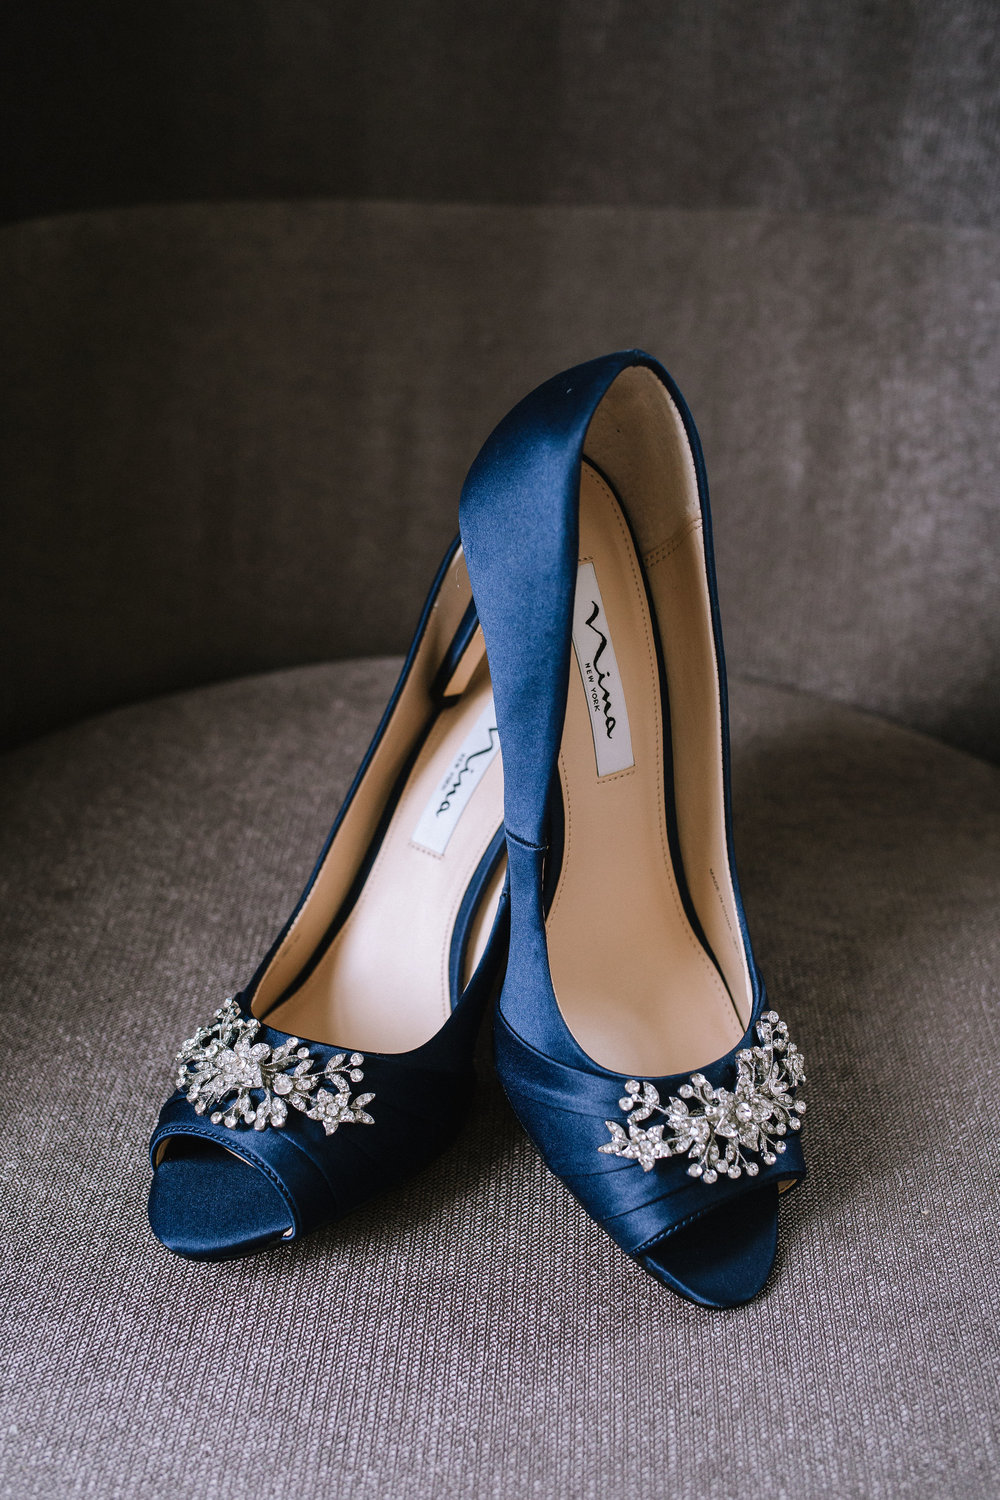 Bride's blue embellished Badgley Mischka wedding shoes for Pittsburgh wedding at Studio Slate planned by Exhale Events. Find more wedding inspiration at exhale-events.com!